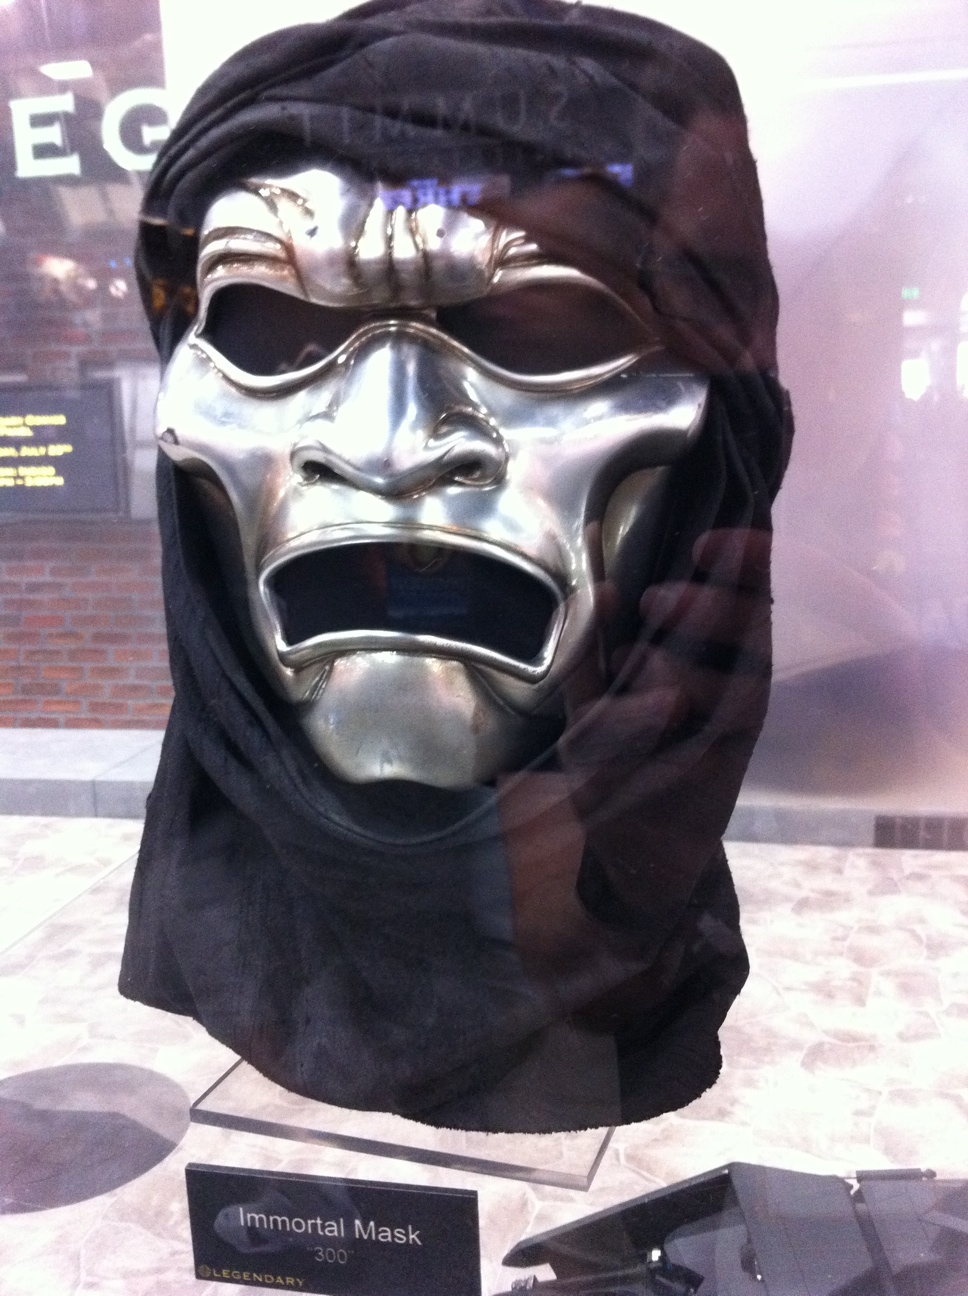 Pin 300 Immortals Mask on Pinterest